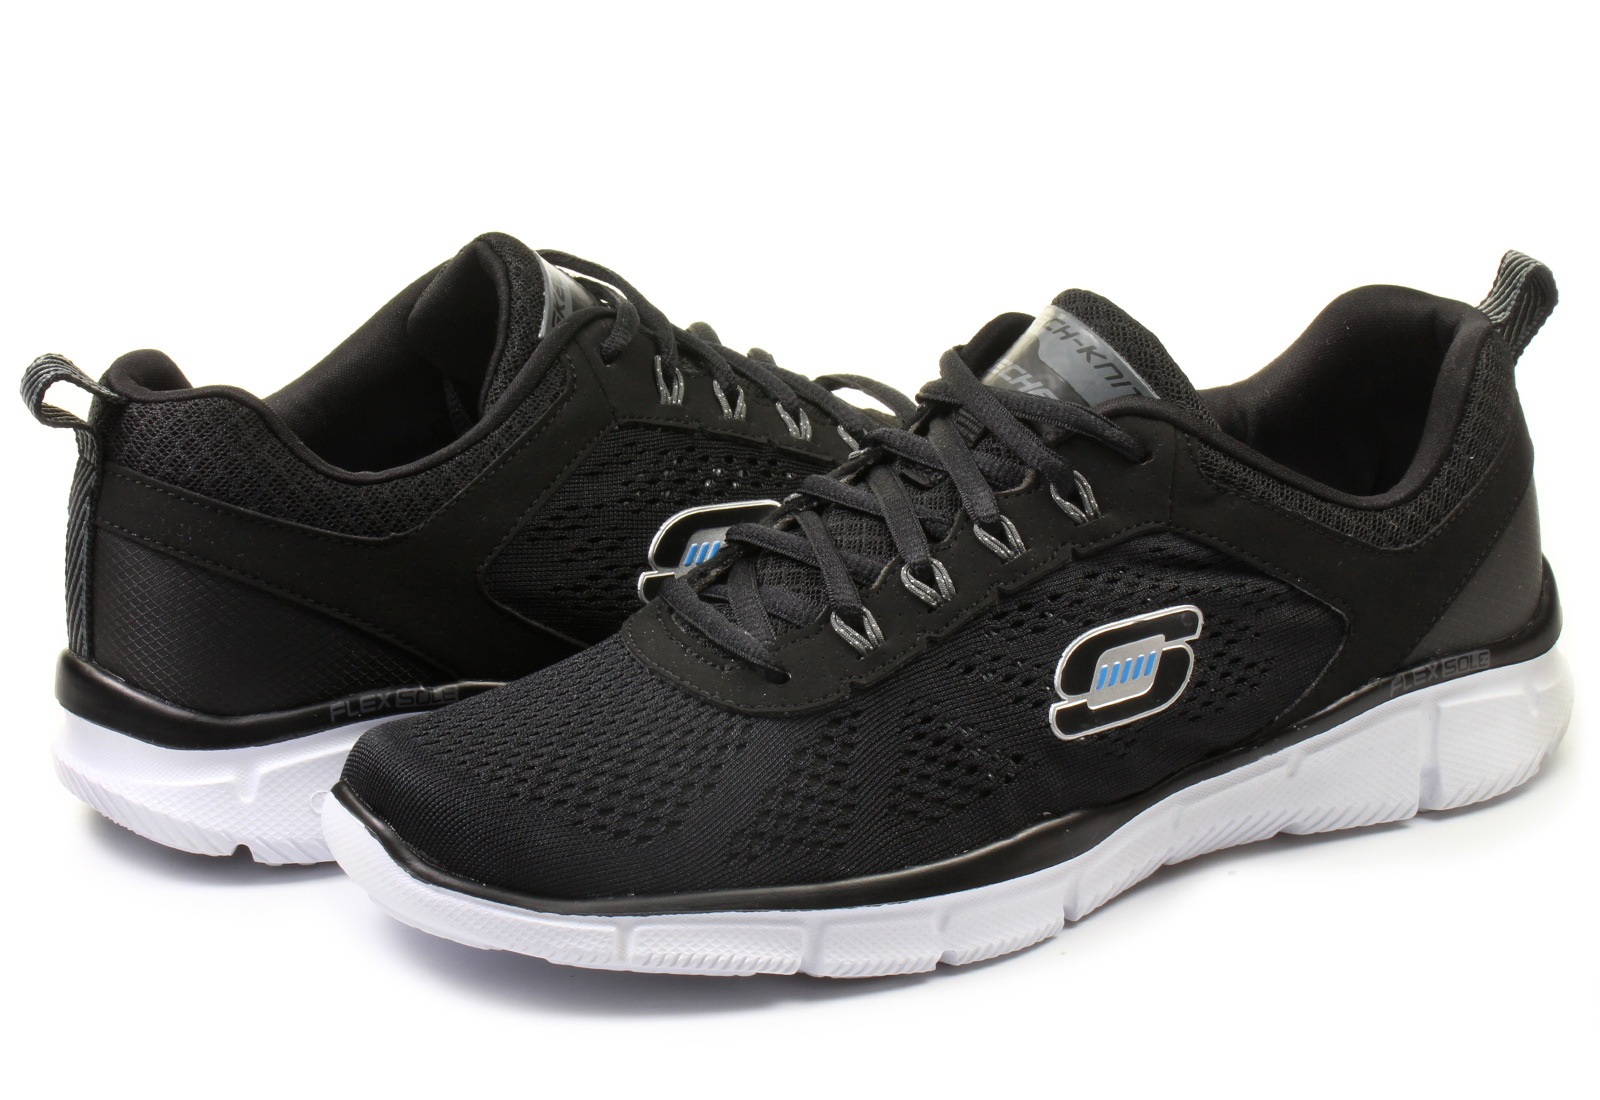 Skechers Converse Shoes